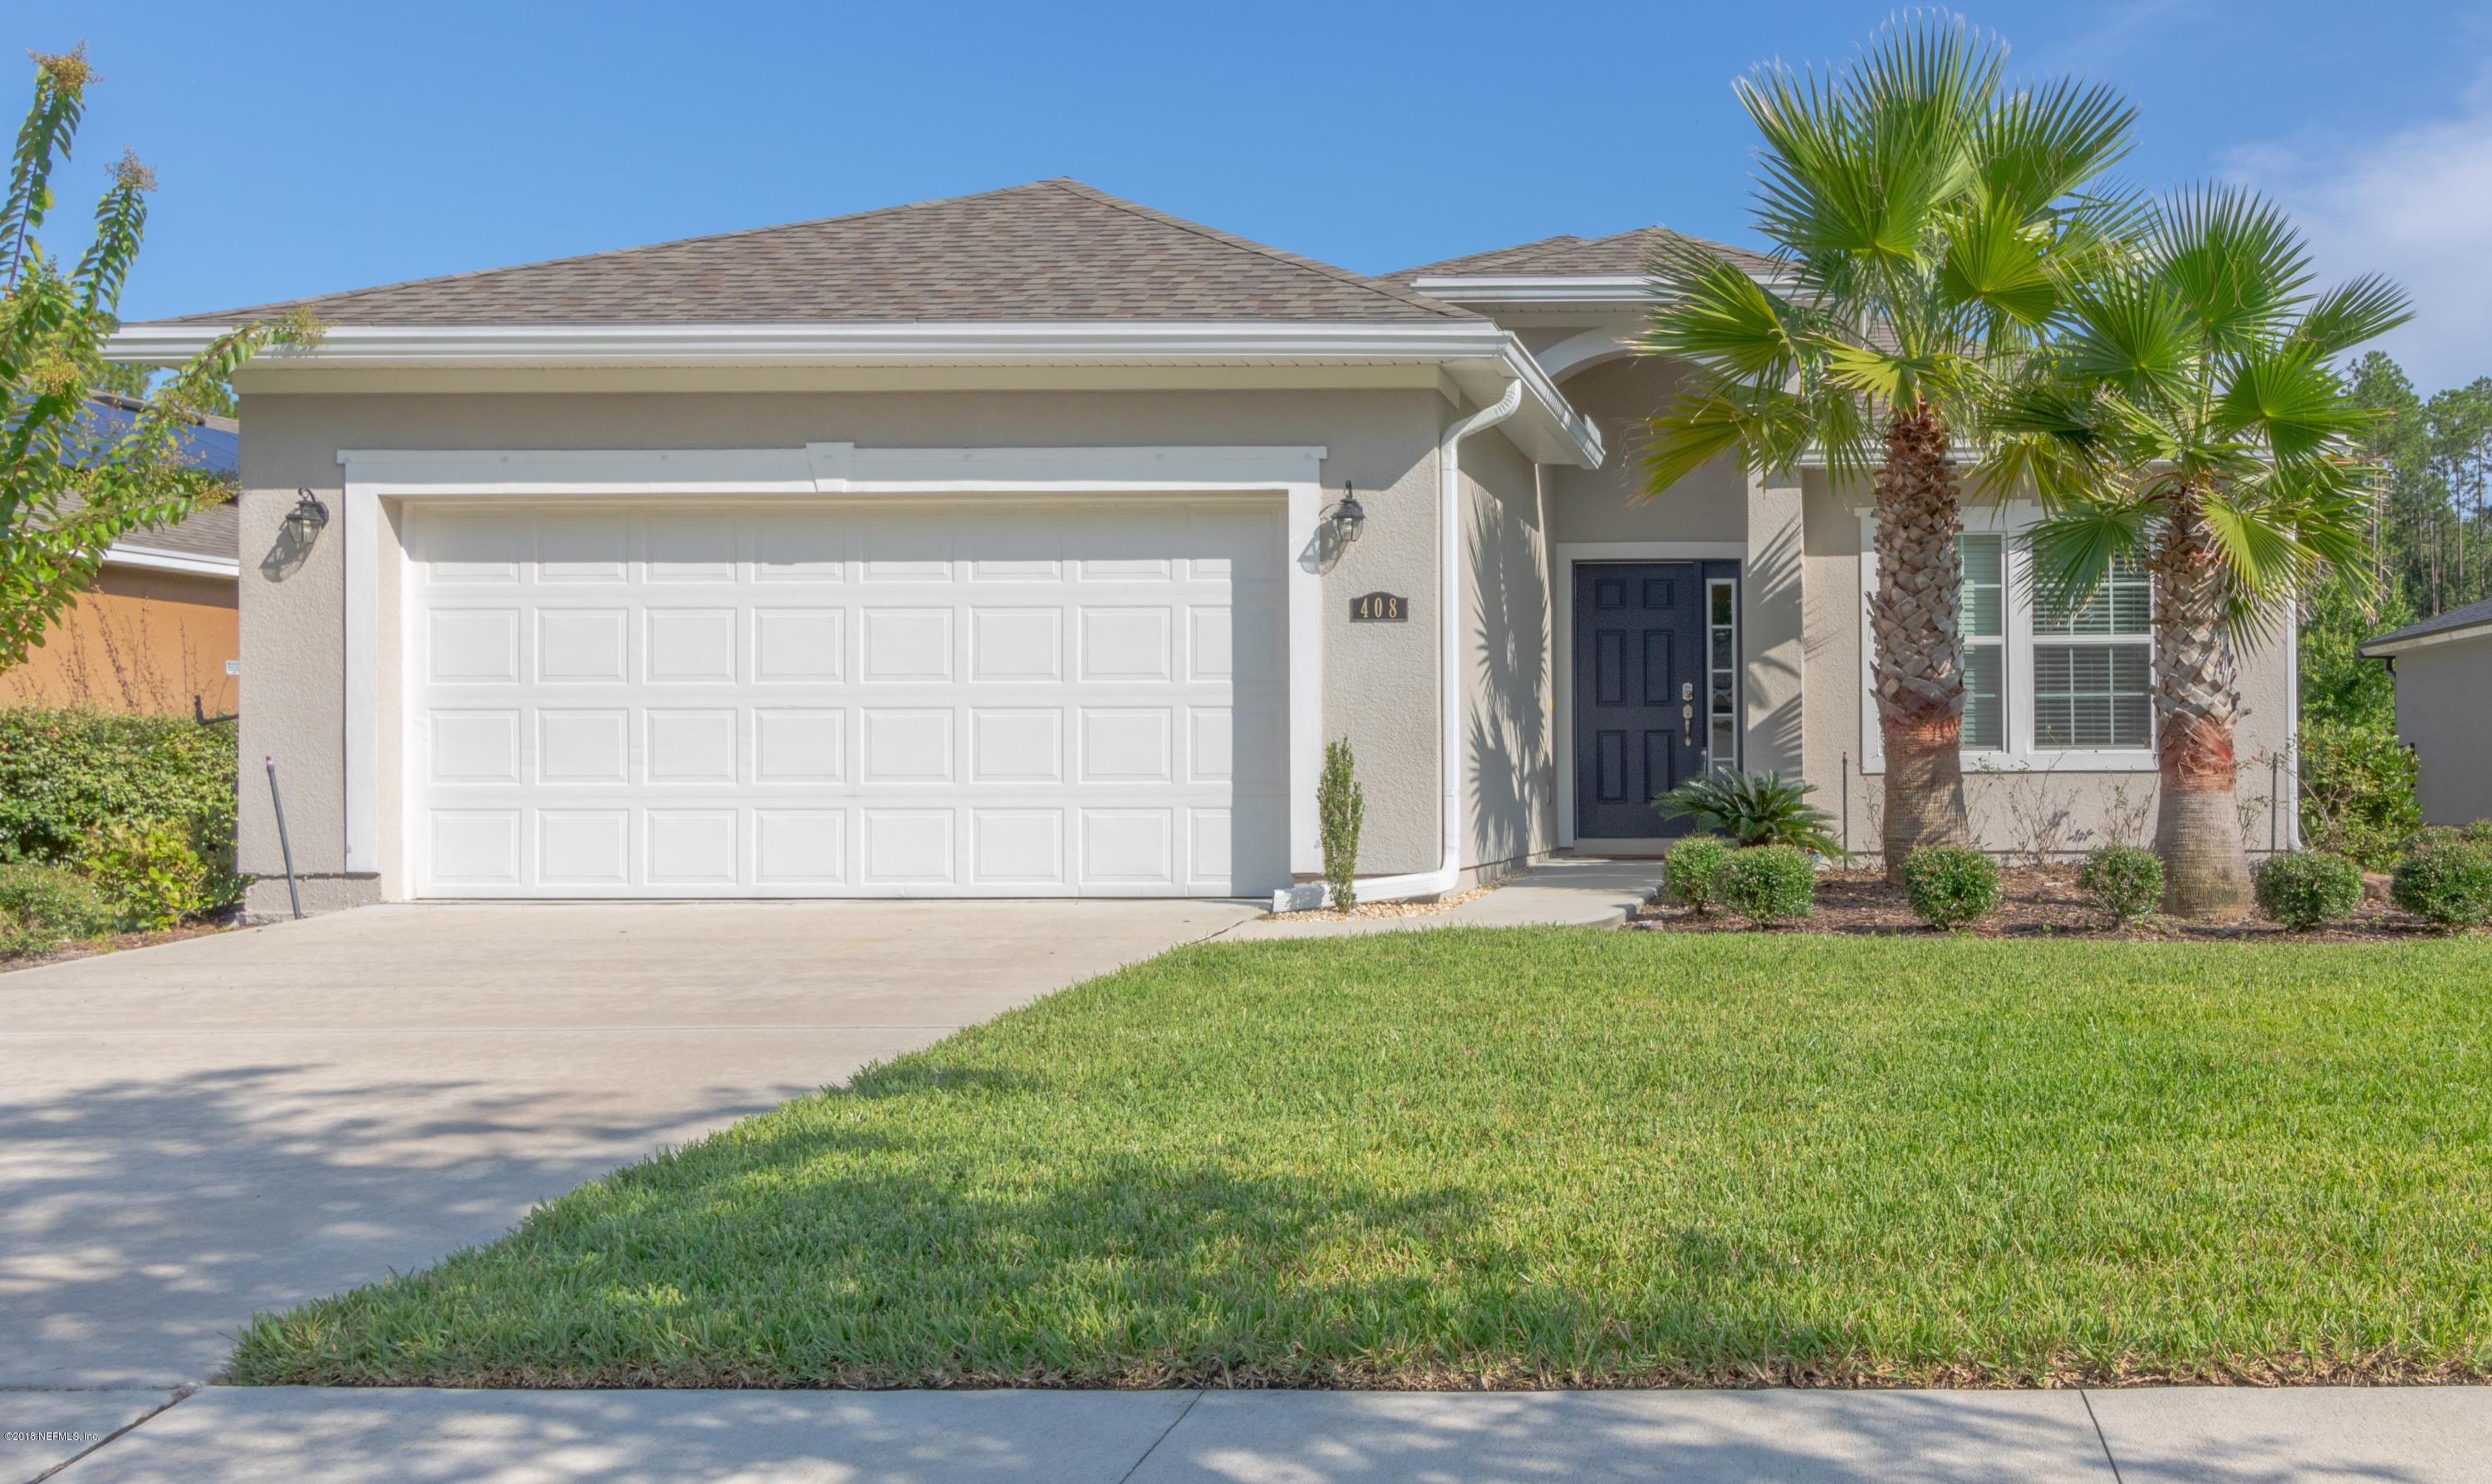 408 WAYFARE, PONTE VEDRA BEACH, FLORIDA 32081, 3 Bedrooms Bedrooms, ,2 BathroomsBathrooms,Residential - single family,For sale,WAYFARE,959885